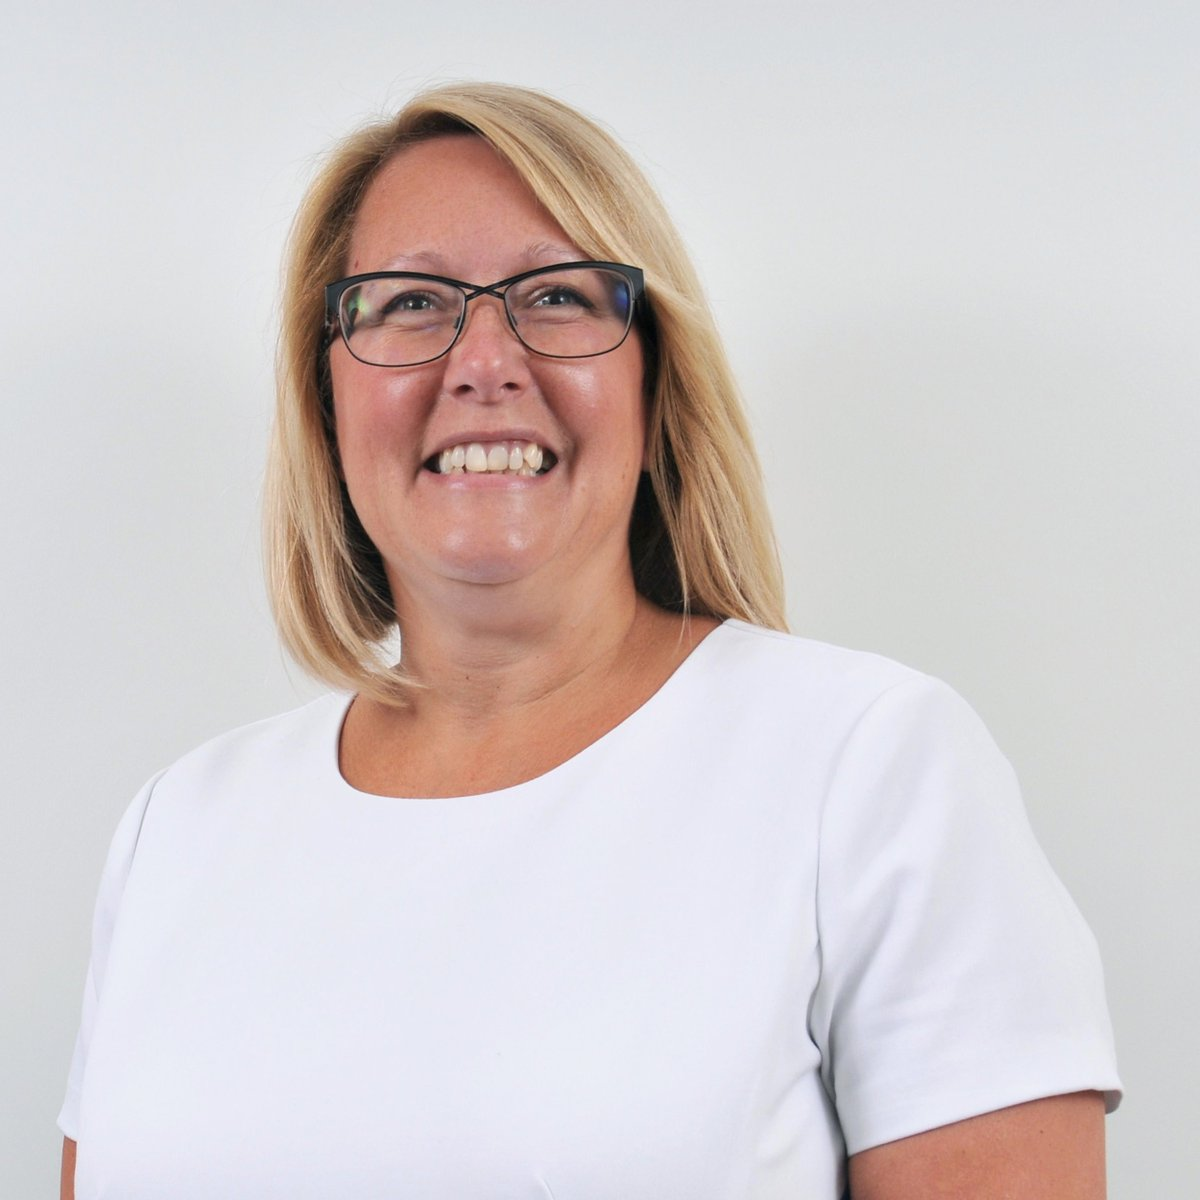 We're really pleased to welcome Louise Auty to our team as head of #procurement and supply chain management <br>http://pic.twitter.com/KbrhOF19tA